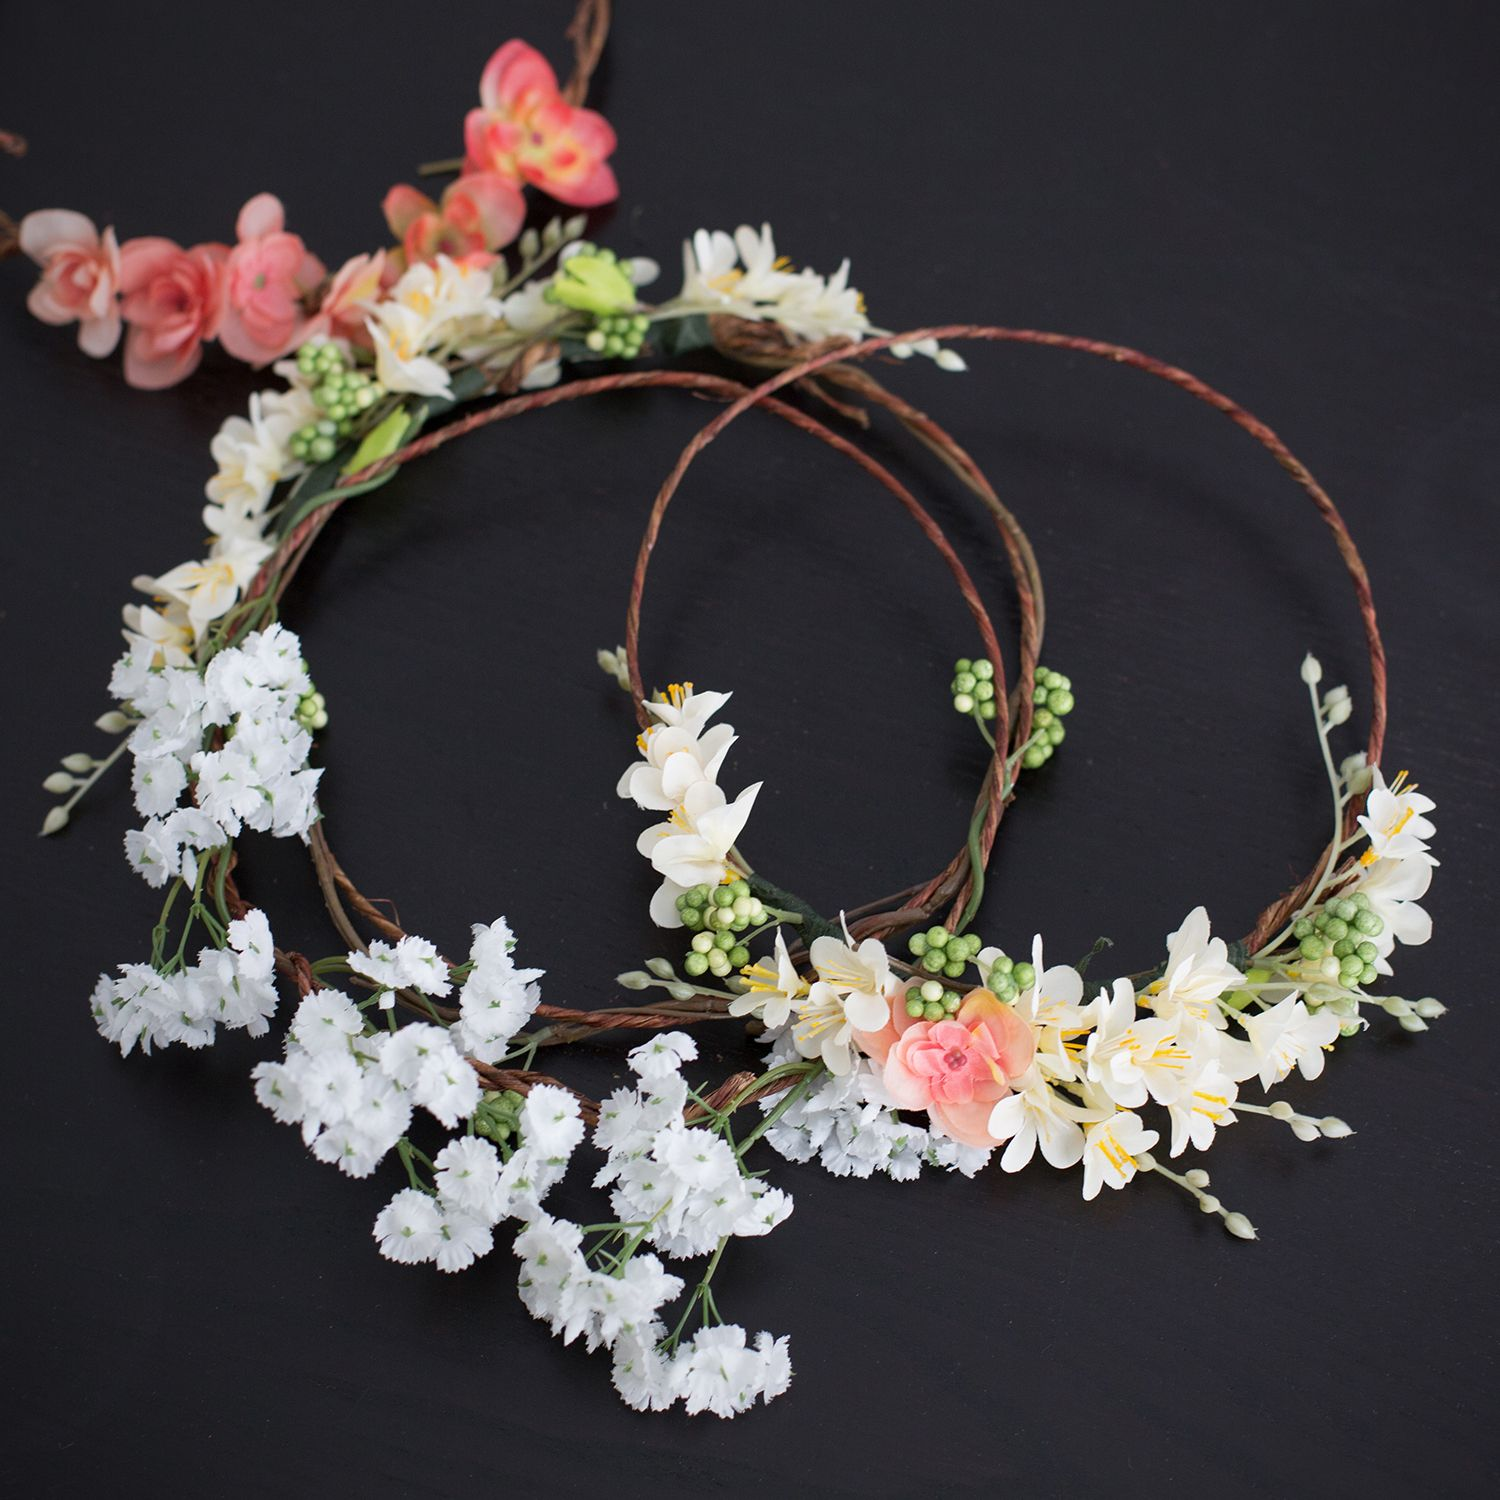 instructions for asssembling a flower crown